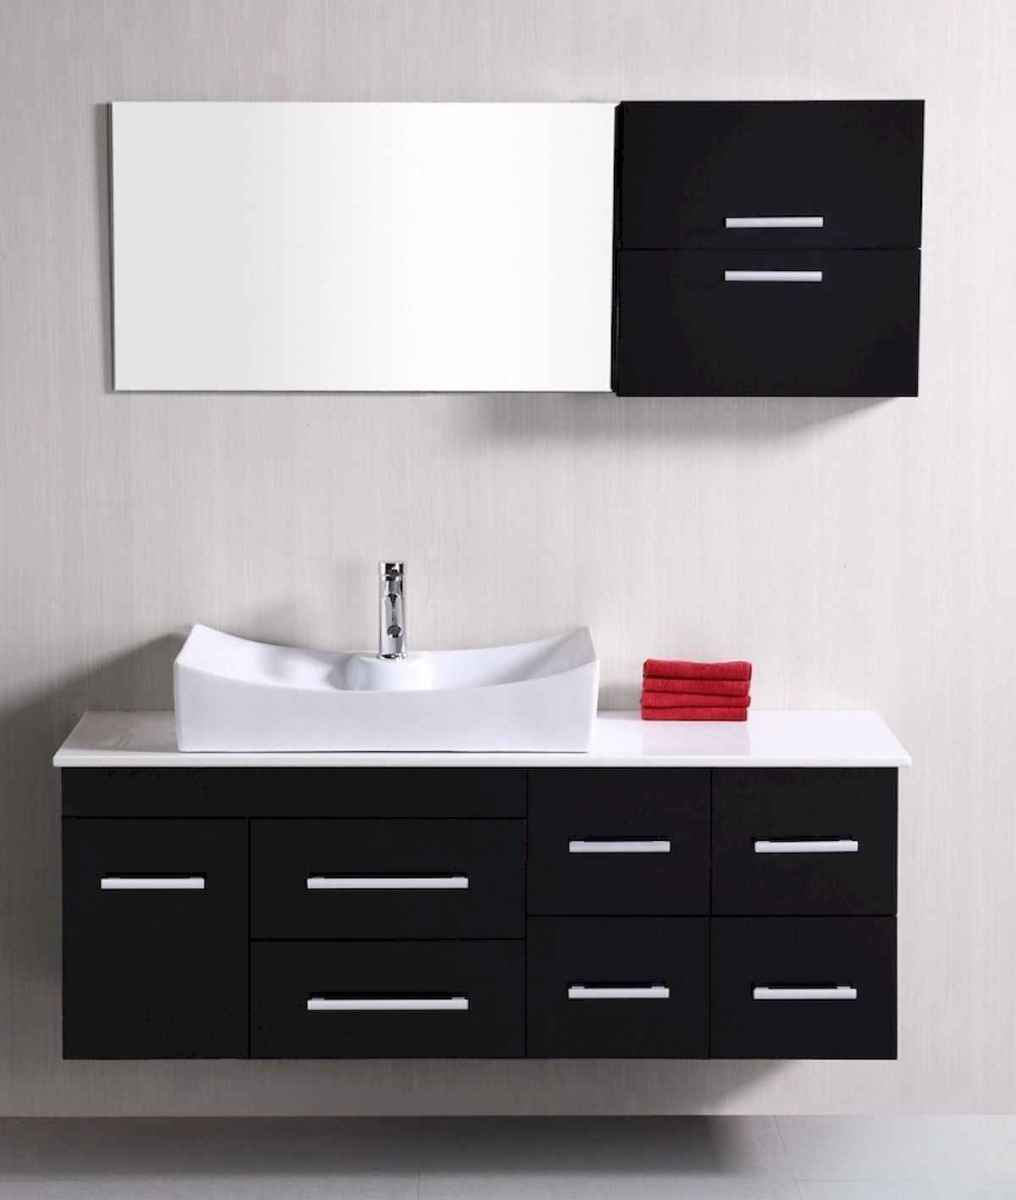 70 modern bathroom cabinets ideas decorations and remodel (29)